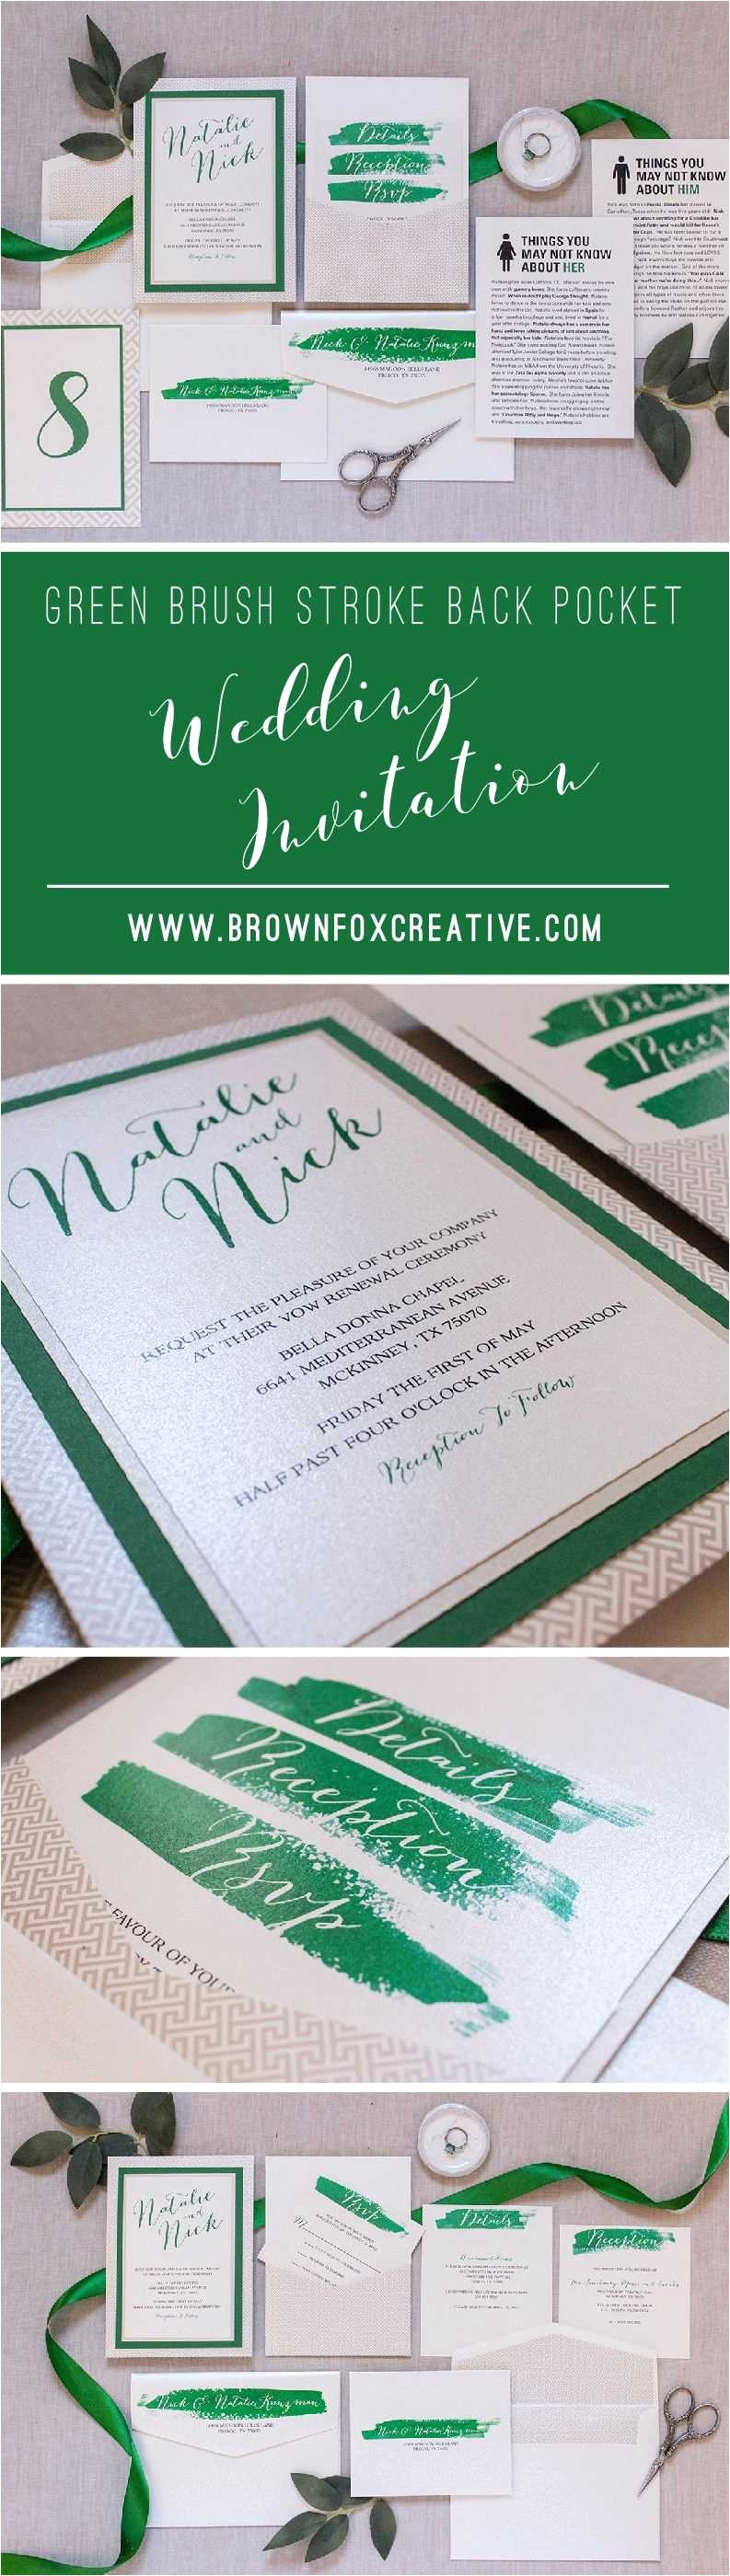 multi color wedding invitations lovely 5x7 green and champagne brush stroke water color back pocket